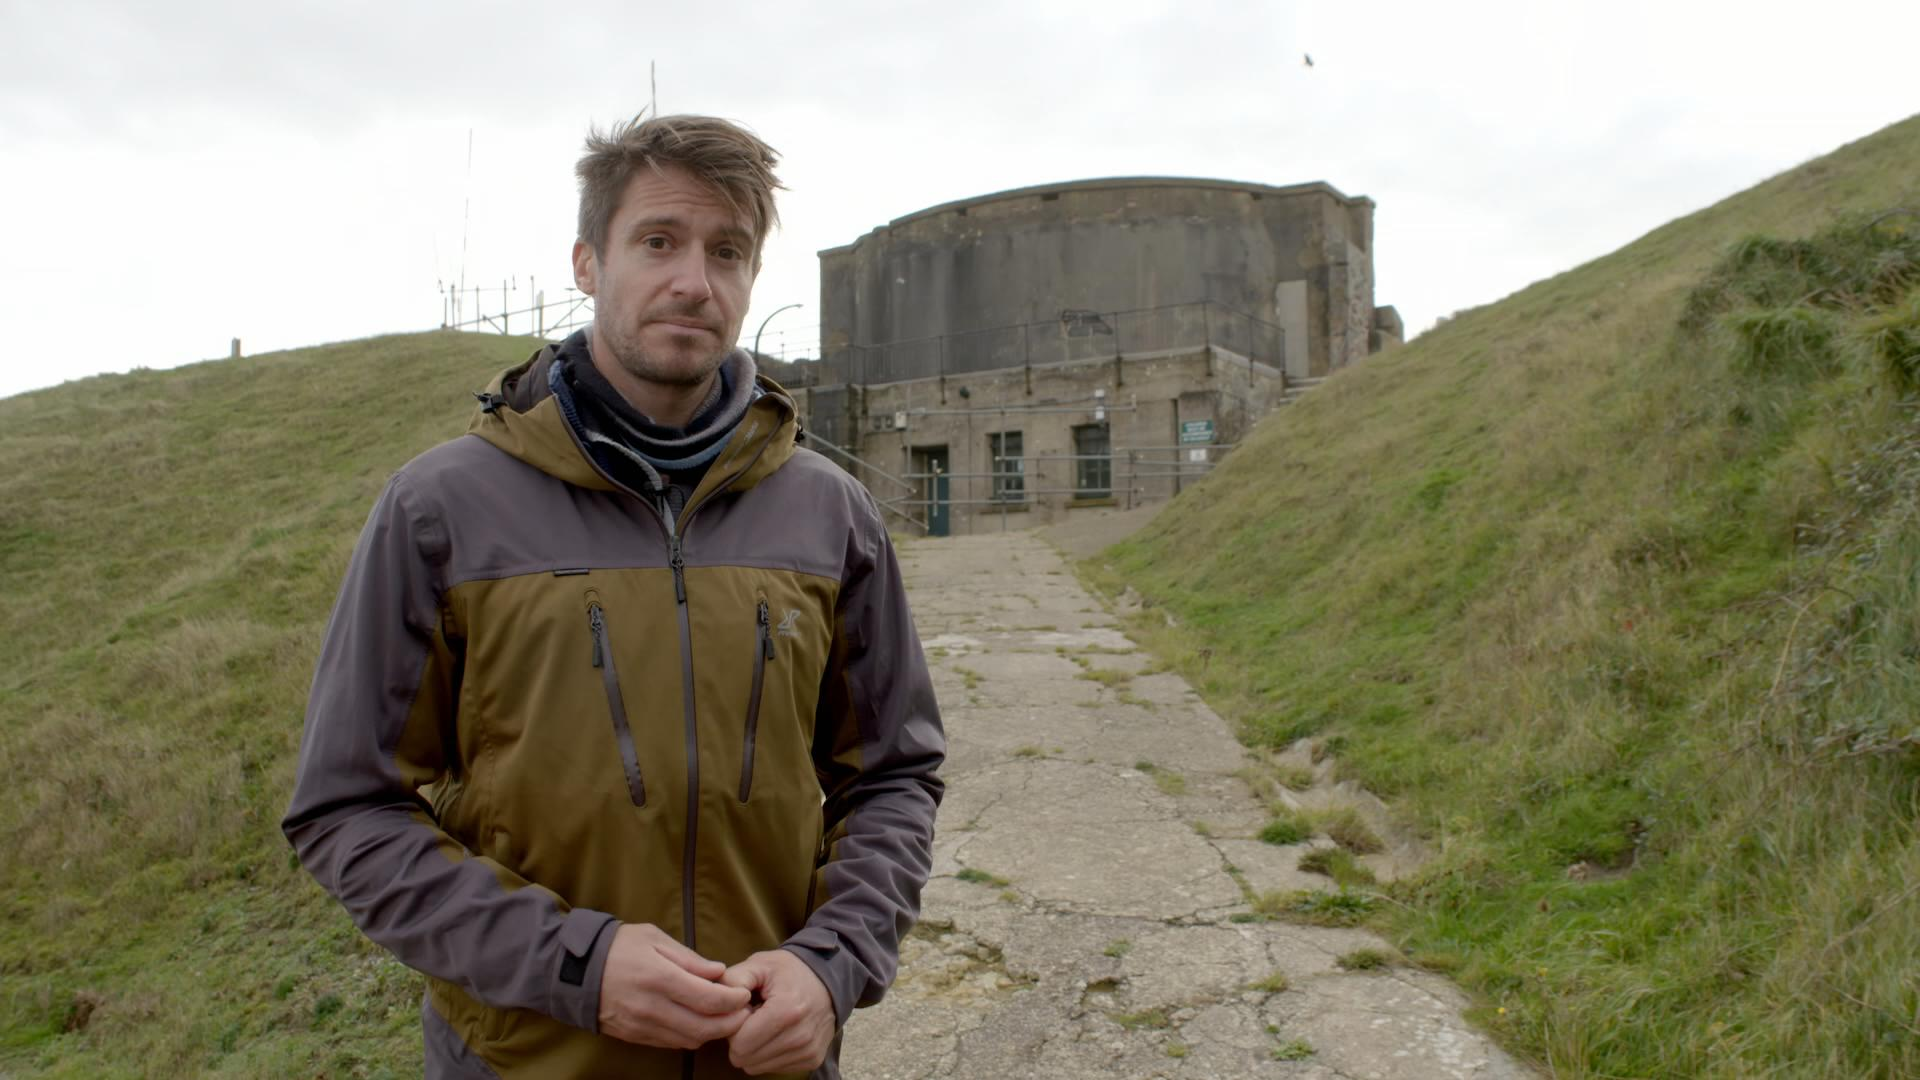 rob bell in front of ruined war building